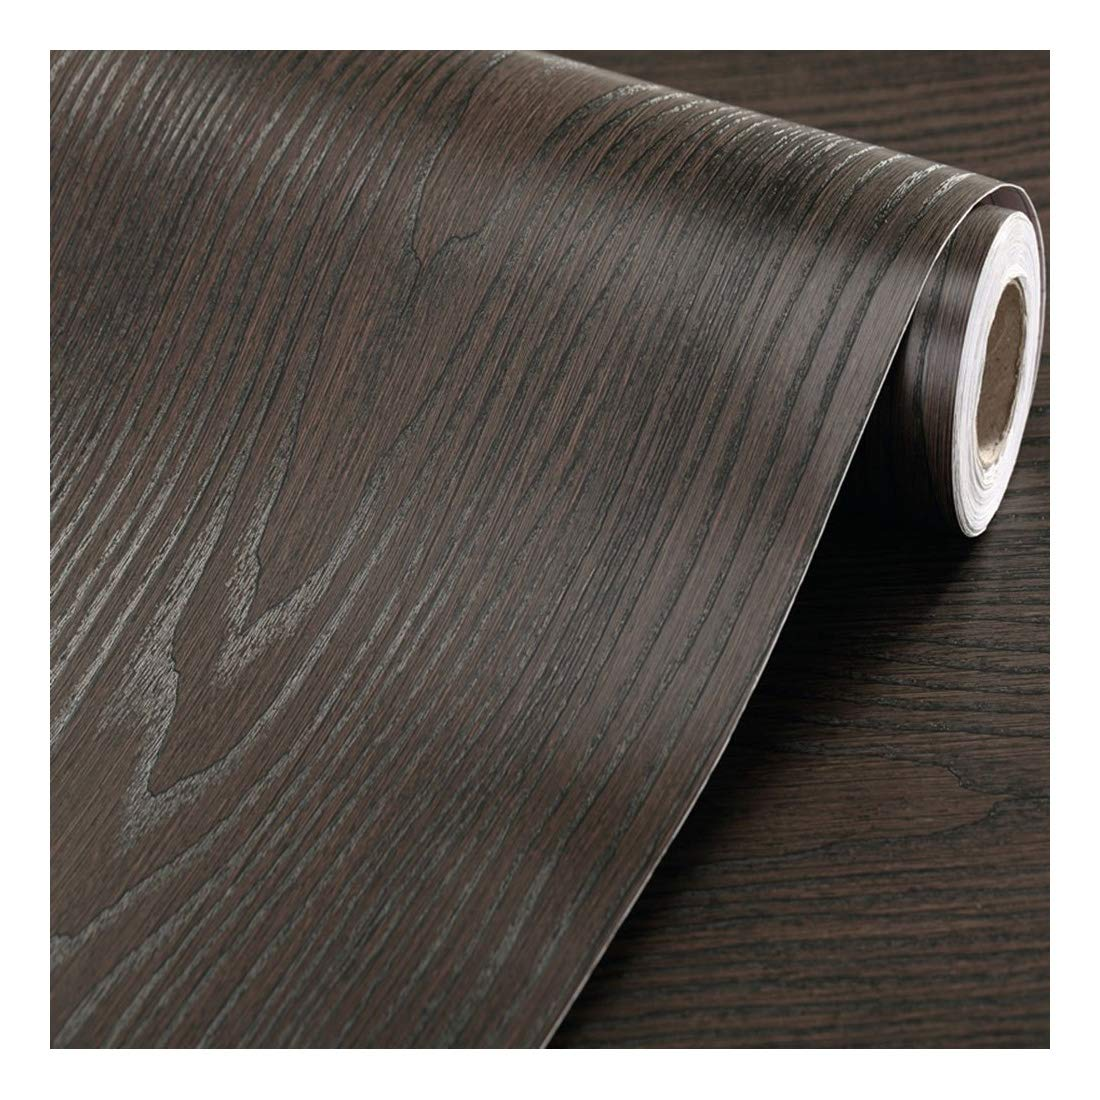 Faux Wood Grain Contact Paper Self Adhesive Vinyl Shelf Liner Covering for Kitchen Countertop Cabinets Drawer Furniture Wall Decal (23.4''Wx117''L,Black-Brown sandalwood)